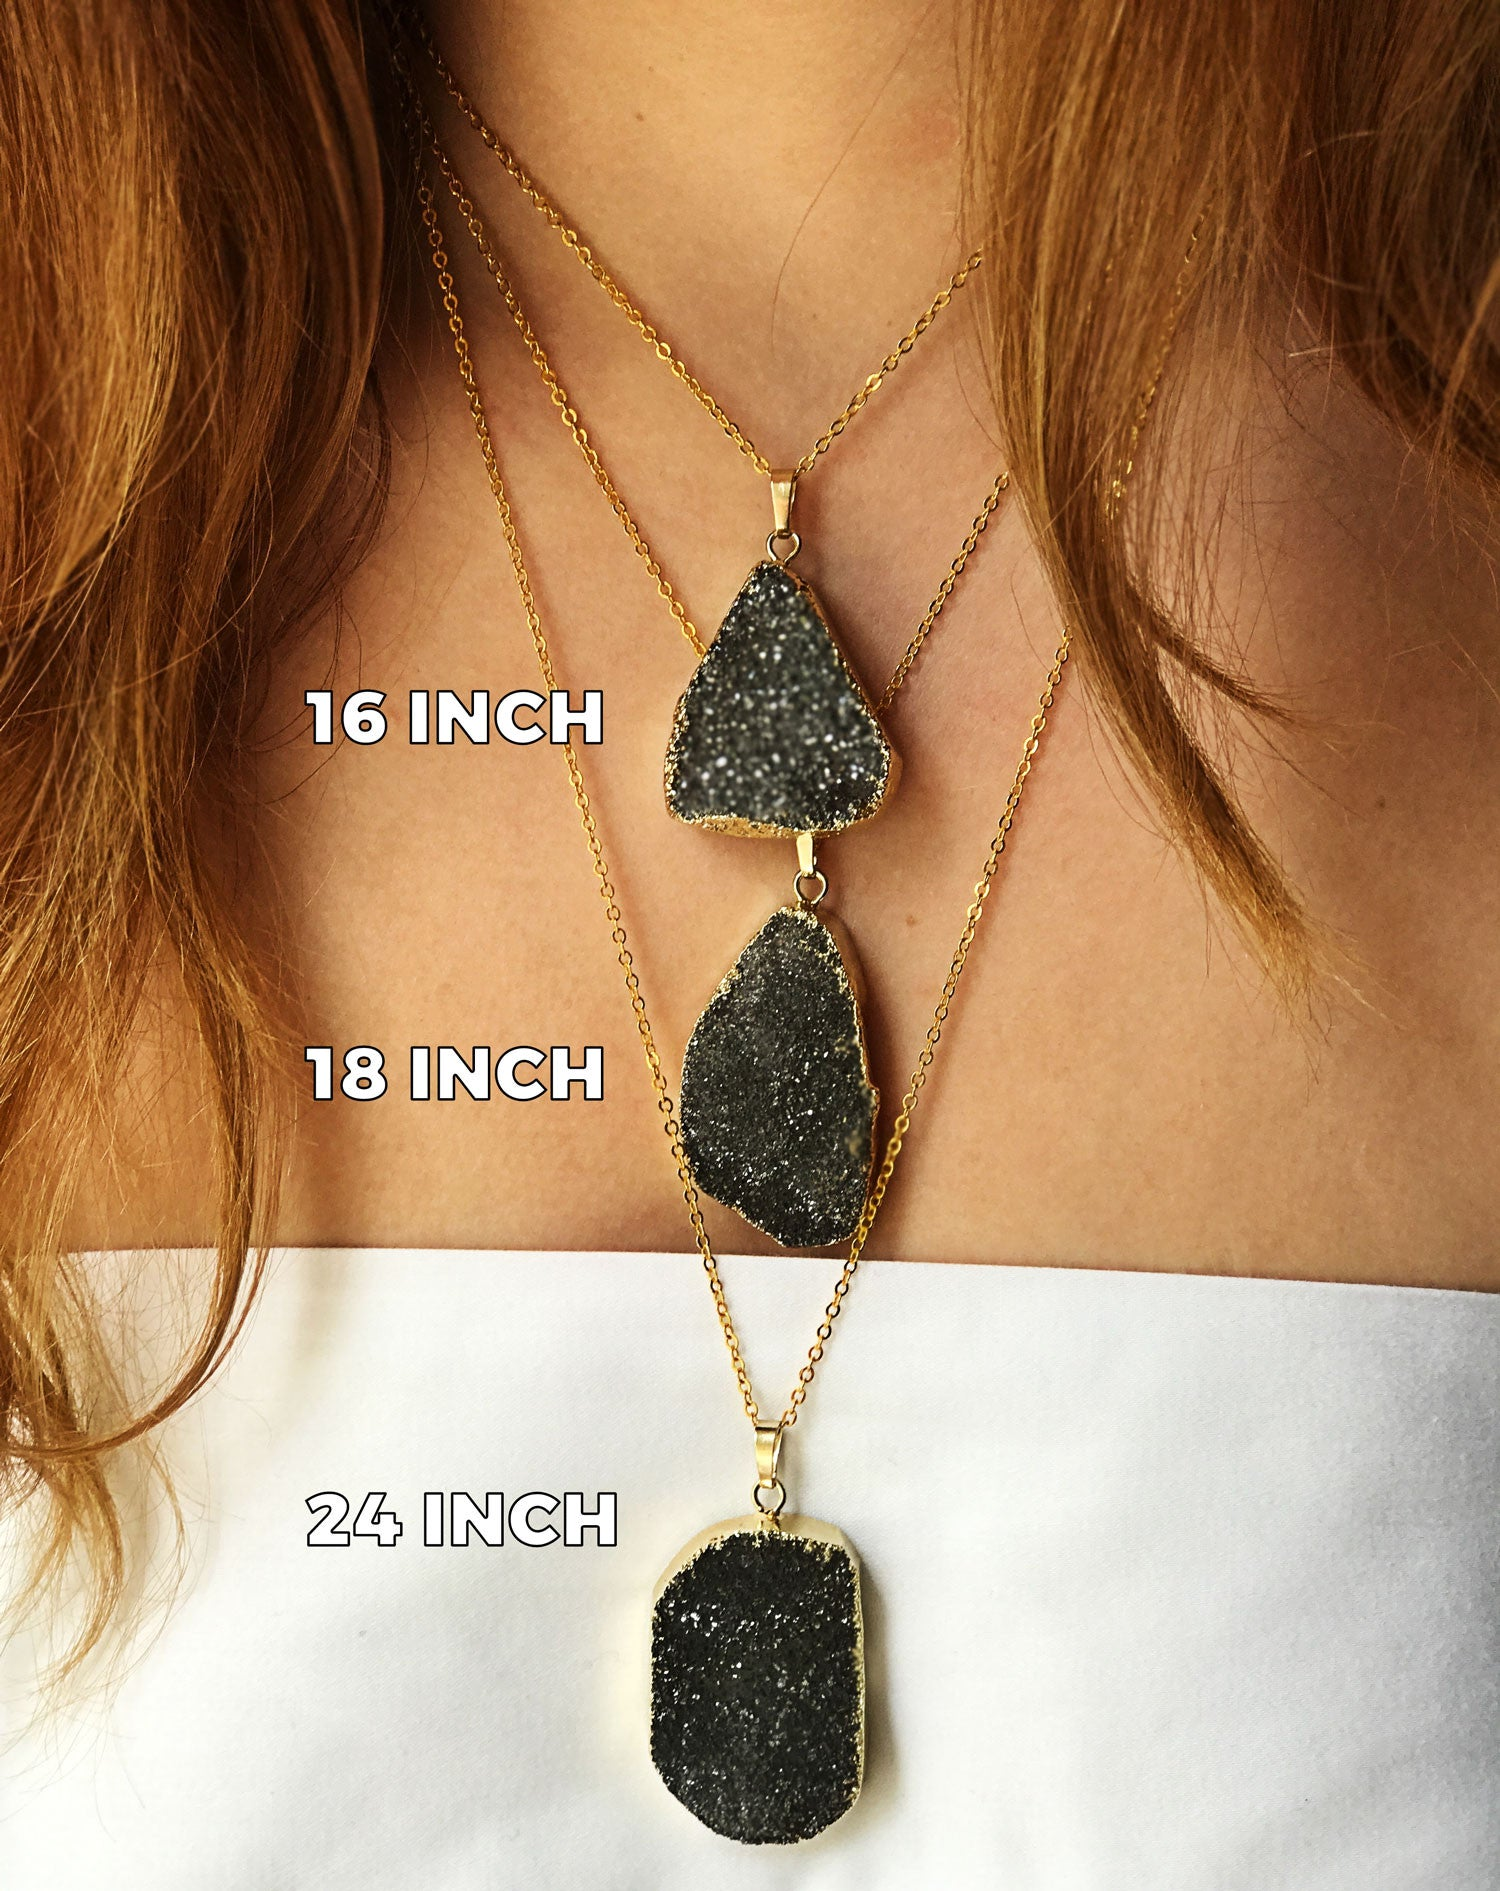 Black Druzy Agate Necklace Size Chart